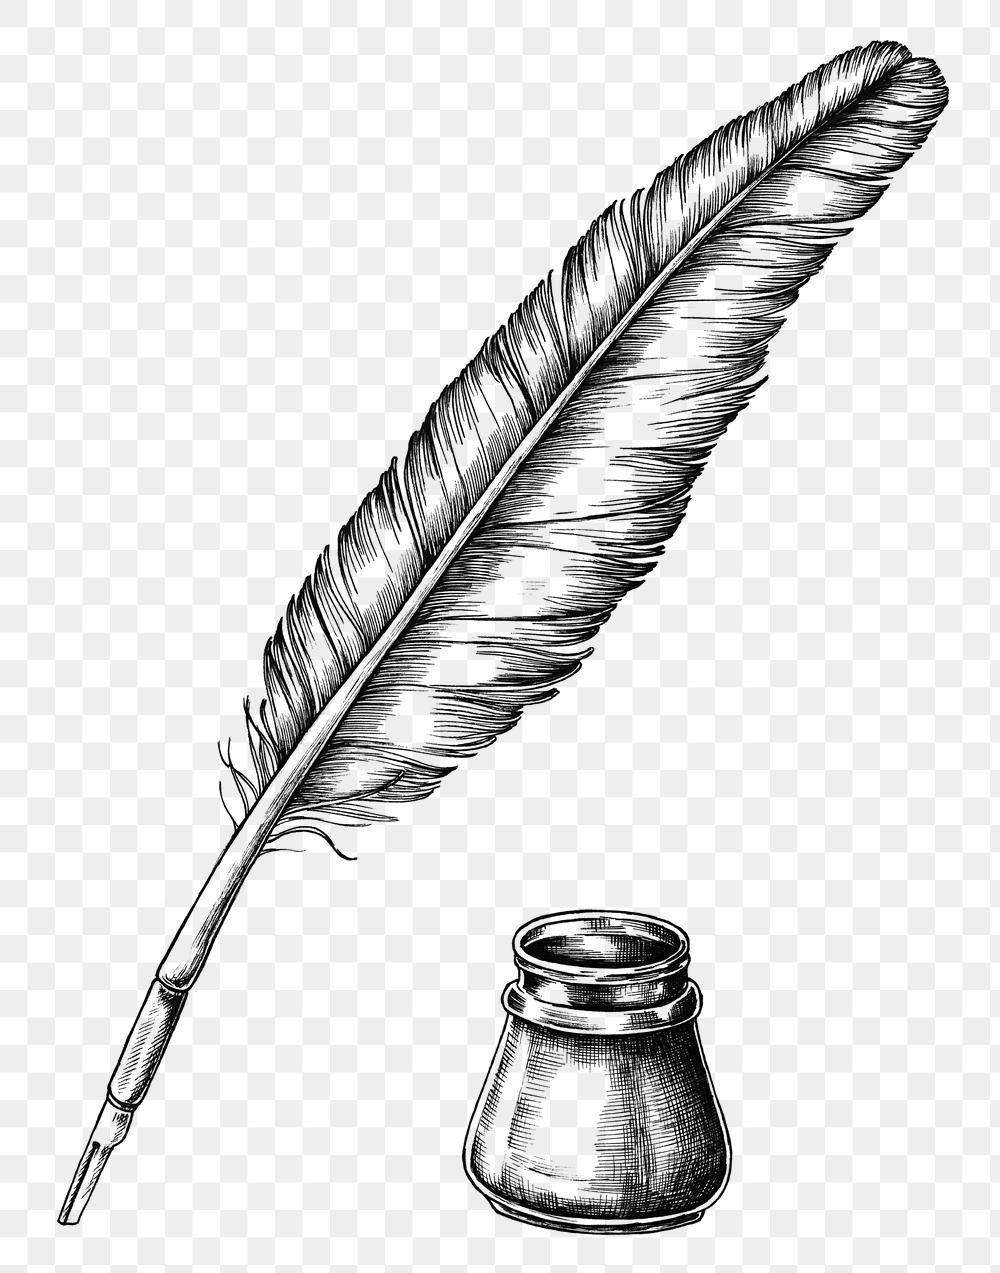 Hand Drawn Quill Pen With An Inkwell Transparent Png Free Image By Rawpixel Com Ink Pen Drawings How To Draw Hands Quill Pen